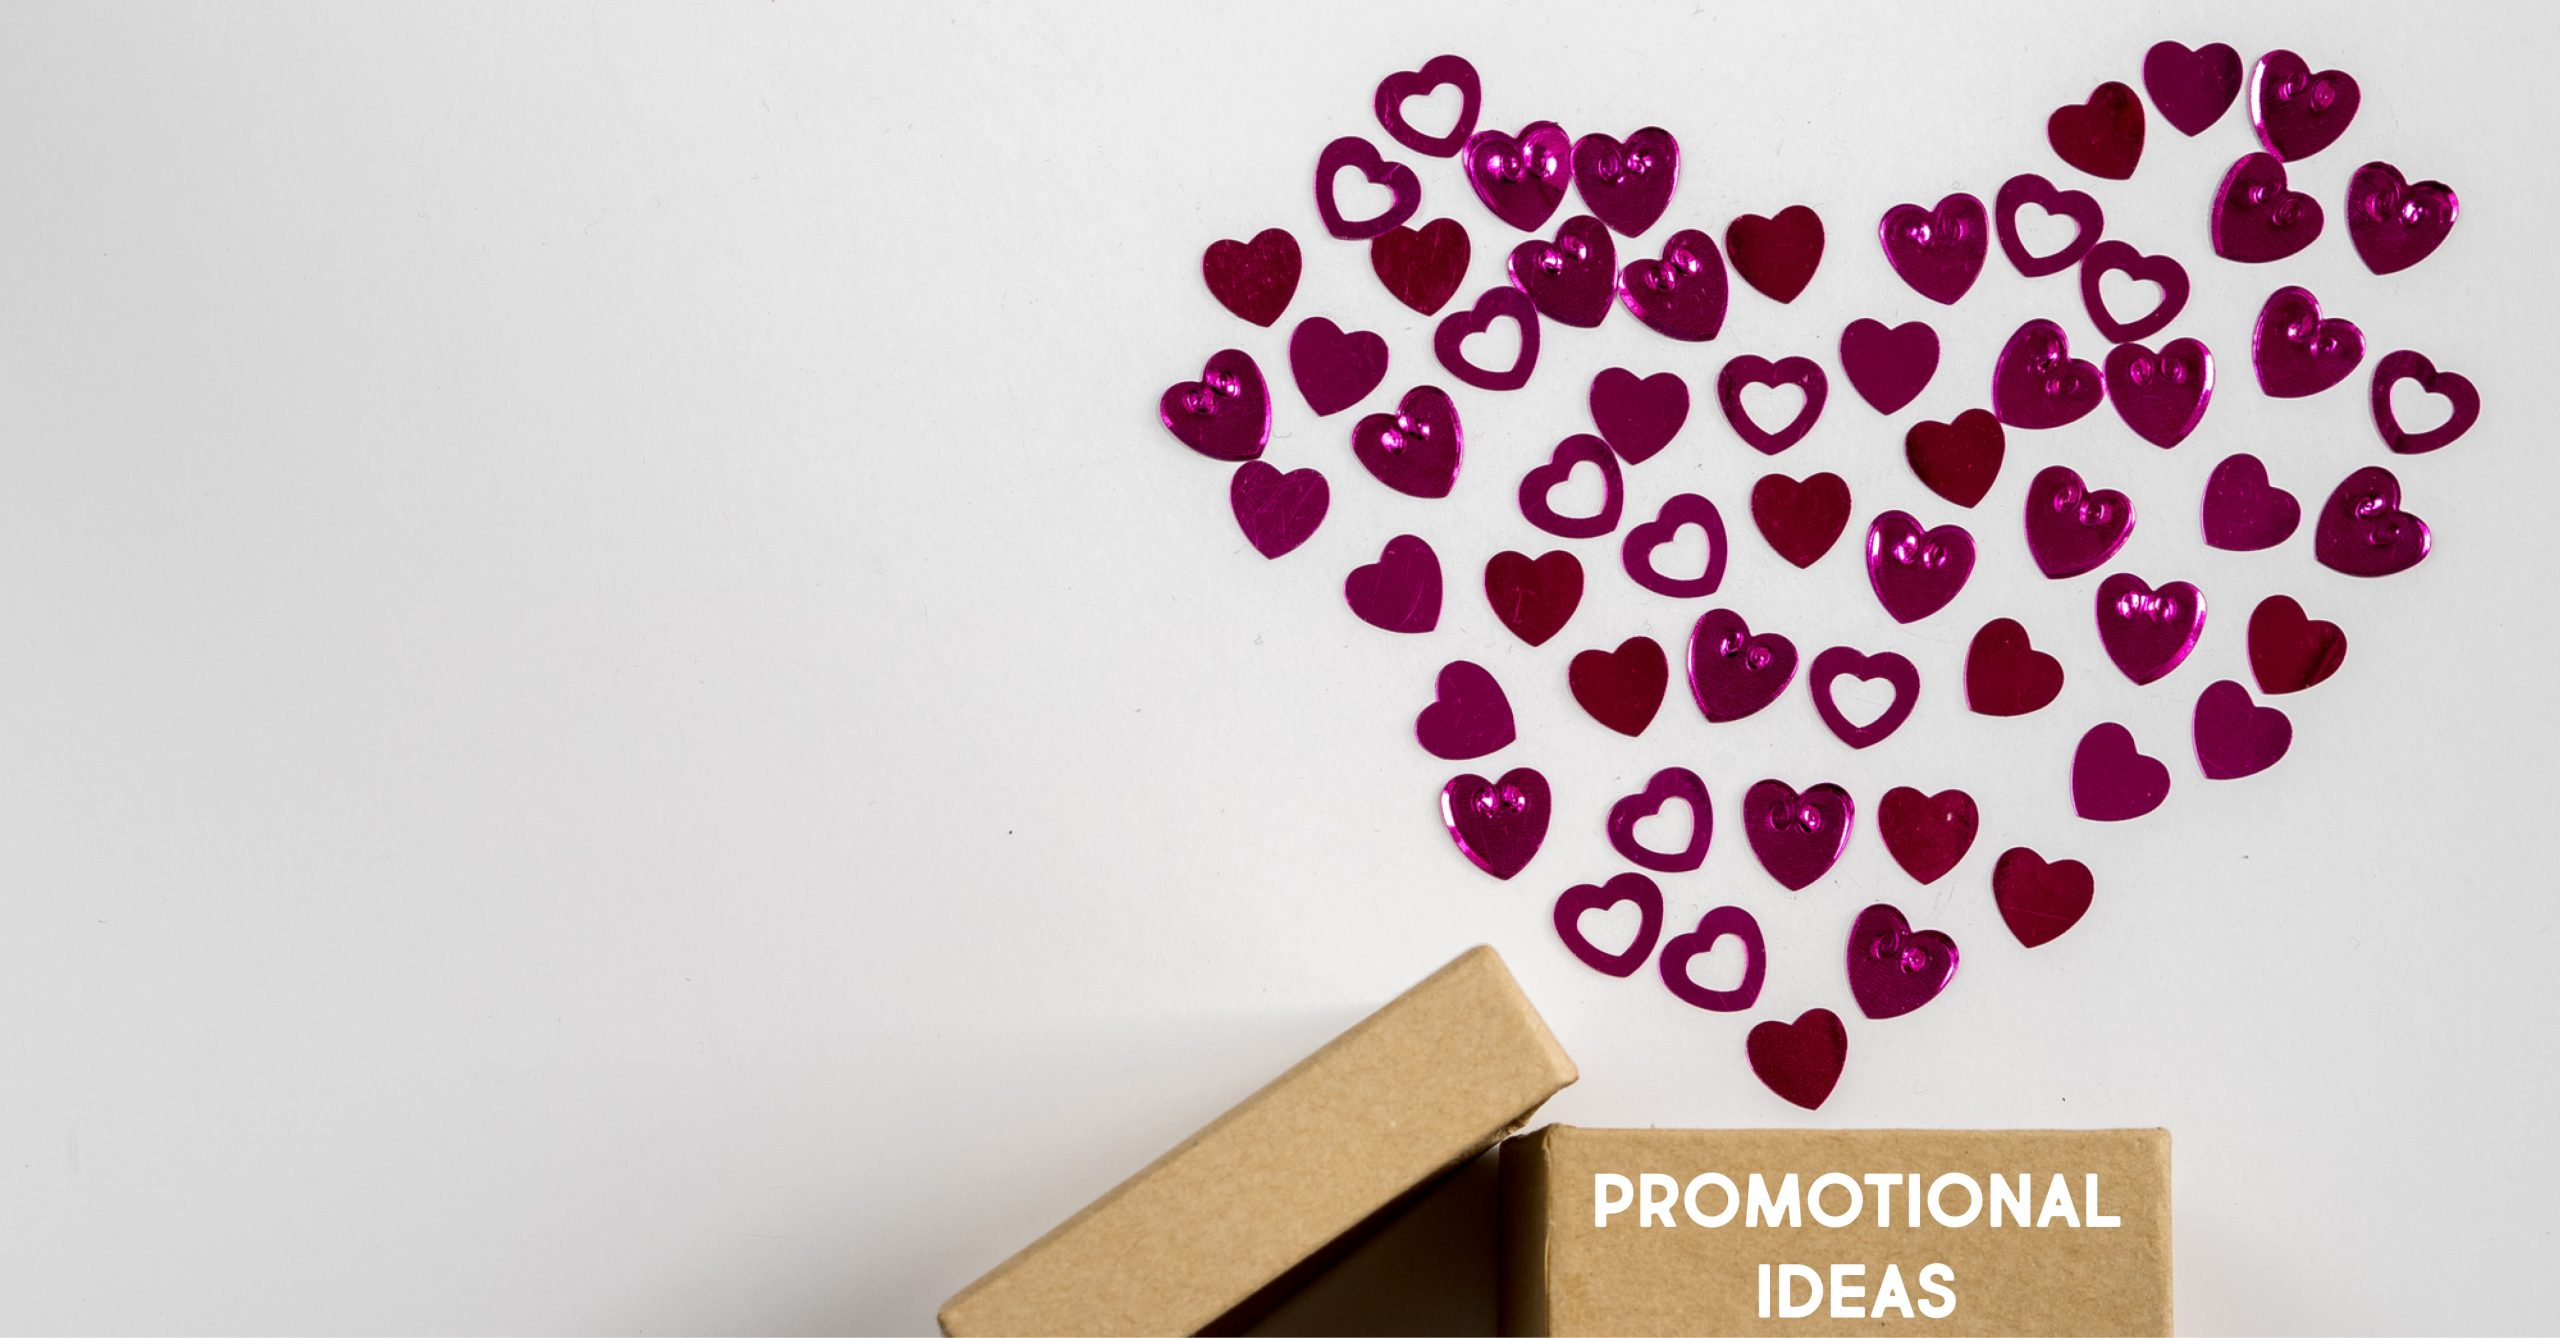 3 Last-Minute Valentine's Day Promotional Ideas